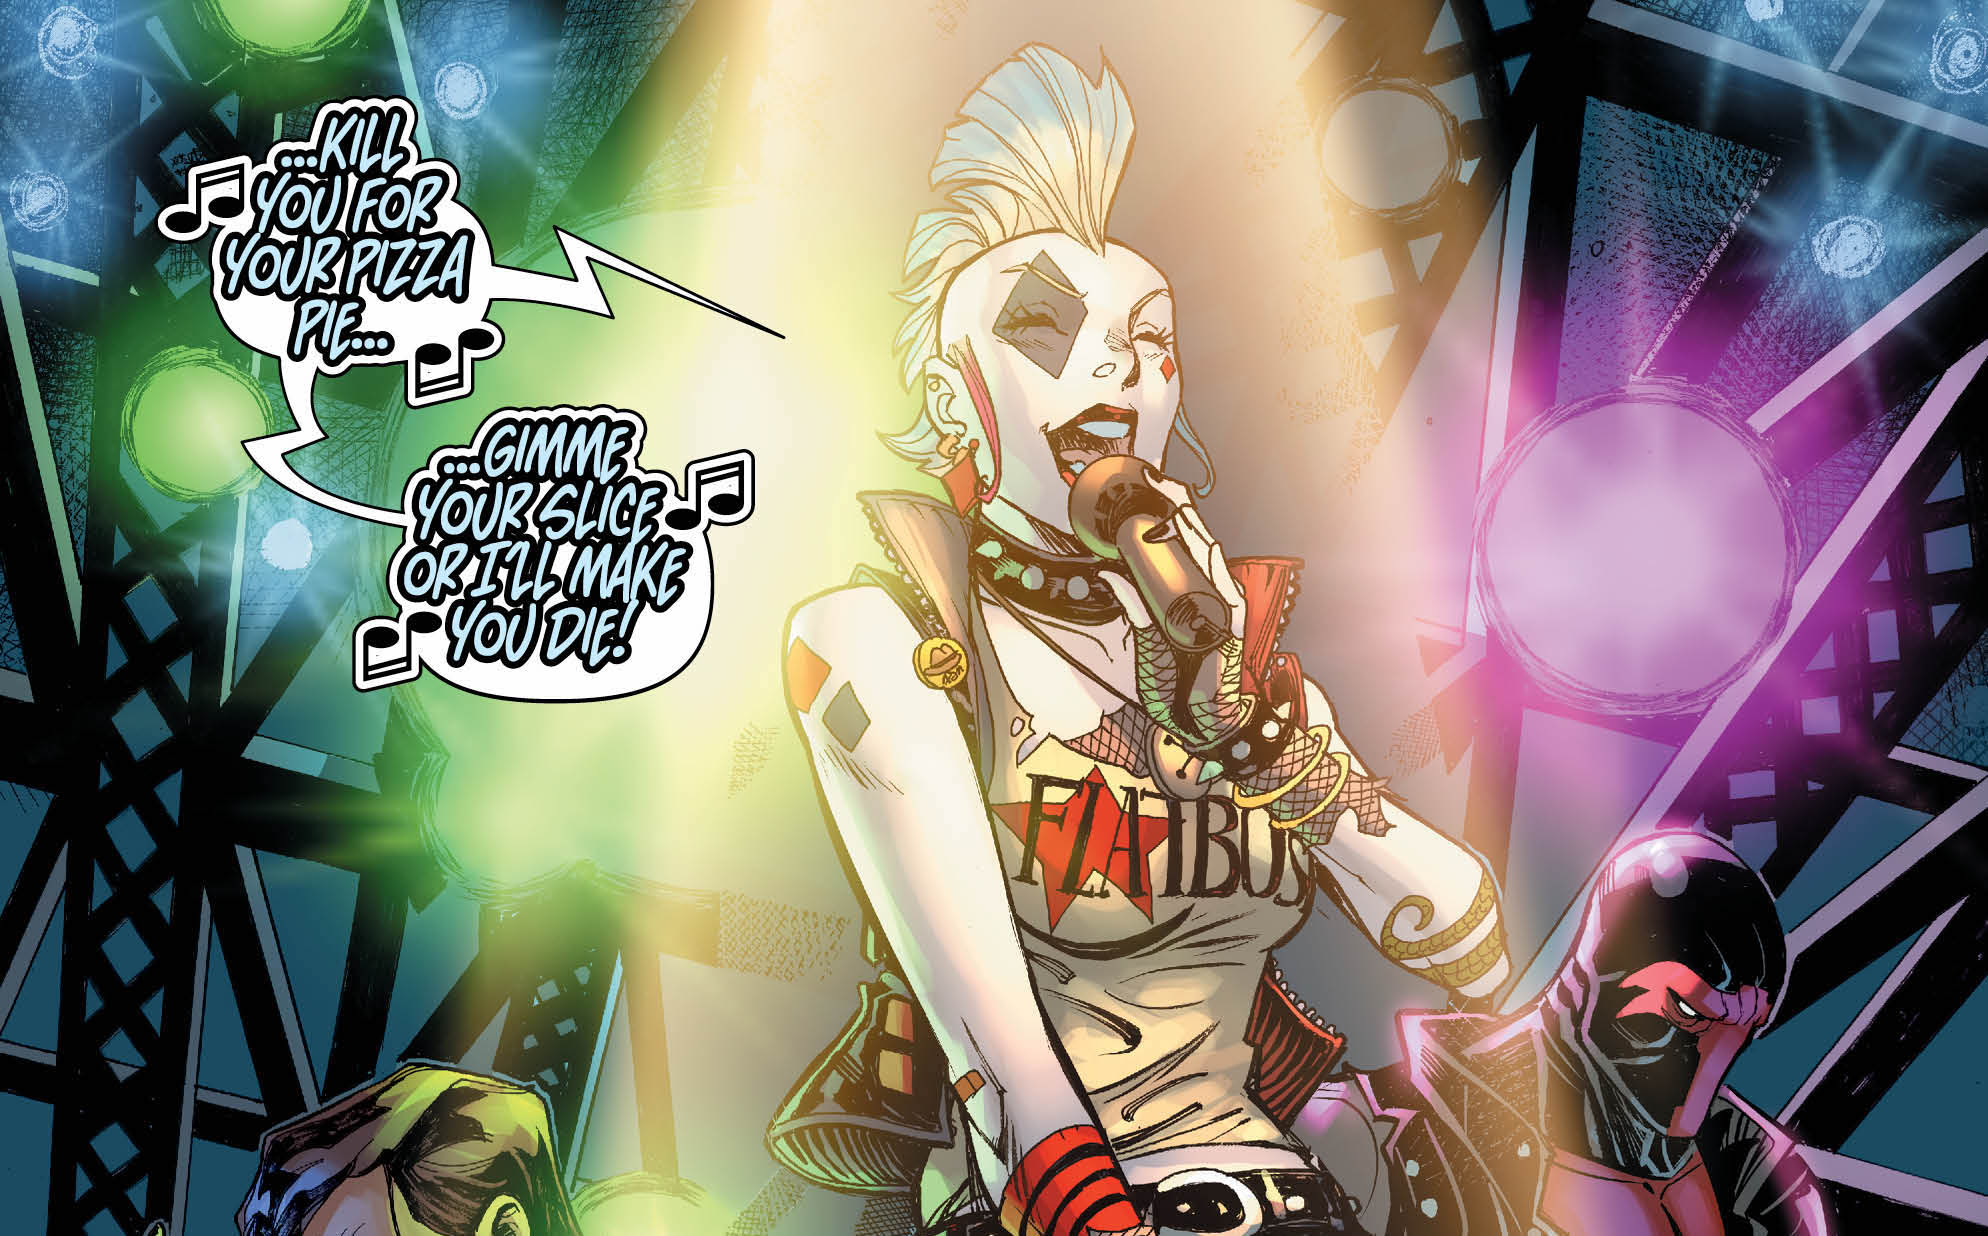 Make no mistake, Harley Quinn is hotter than ever, with rumors of her own solo film in the works and her series being one of the most consistently funny and clever comics on the stands. AiPT! recently had the opportunity to talk to the writers of Harley Quinn, Jimmy Palmiotti and Amanda Conner, about their new three-issue story arc in issues 5 through 7 and the upcoming Harley Quinn's Little Black Book #6 with guest artist Simon Bisley. The conversation discusses punk rock, their collaborative writing process, Joker's potential beef with Red Tool, and more!